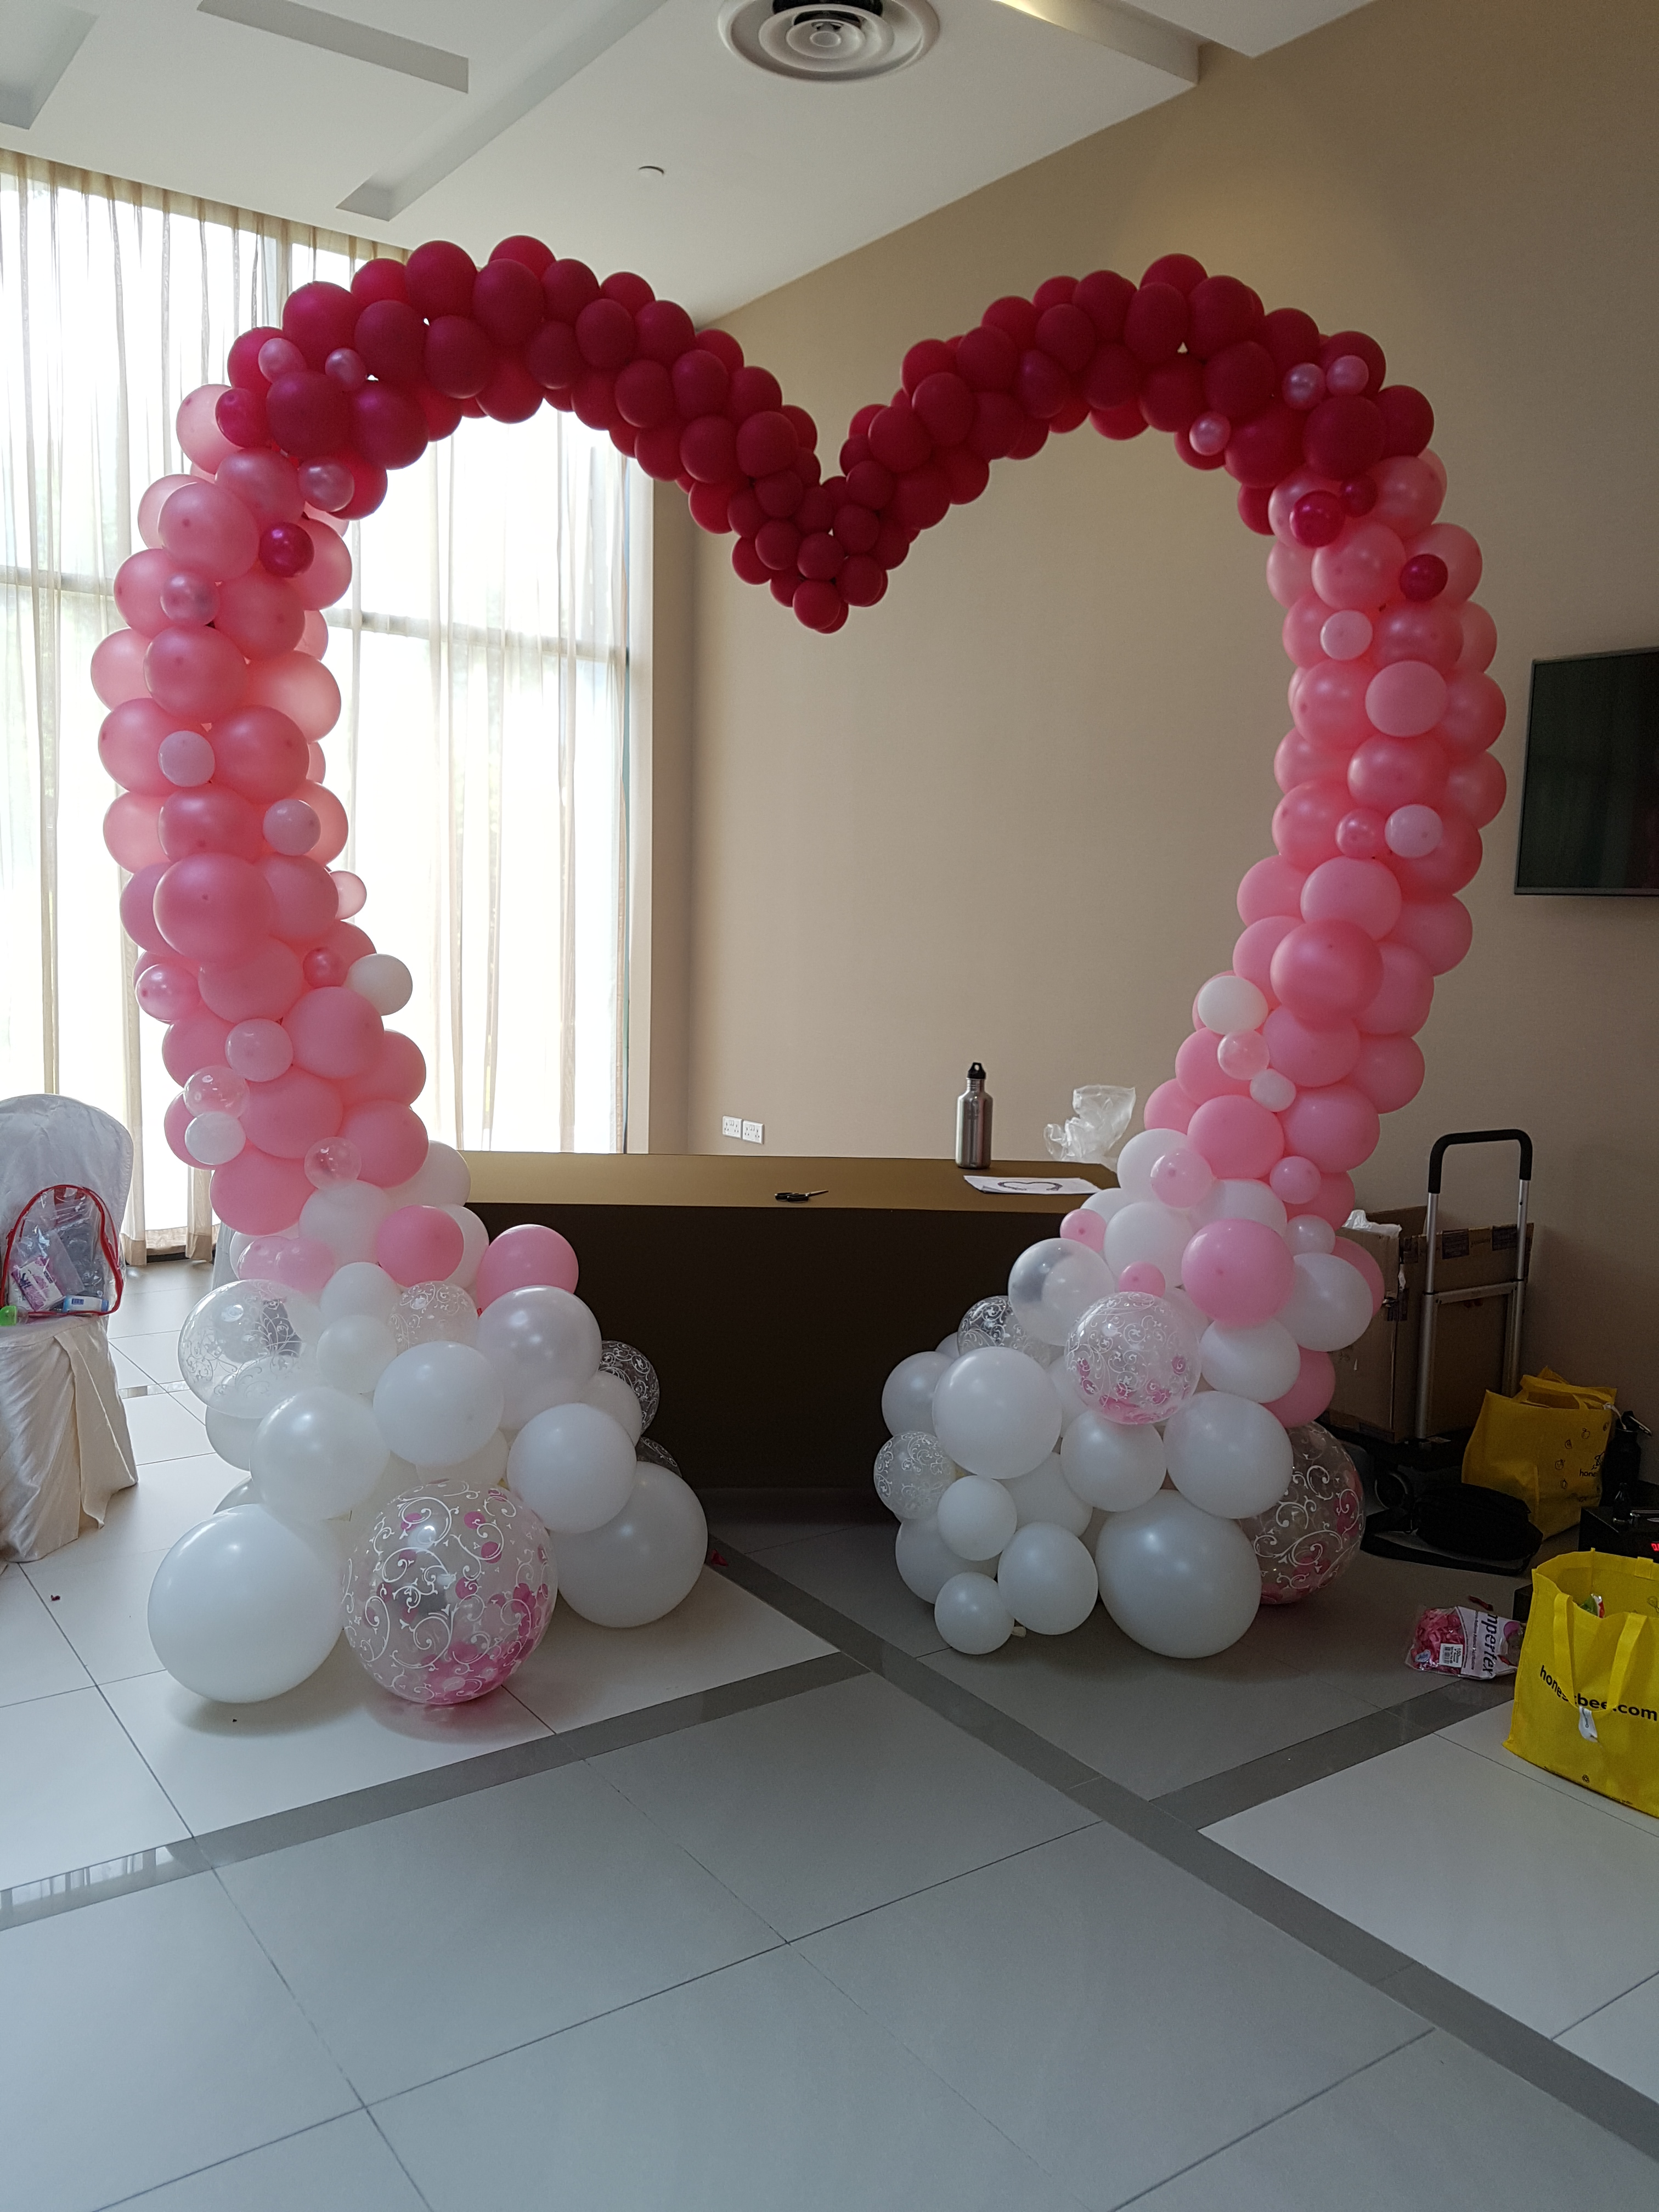 , Heart Shaped balloon arch for weddings and events!, Singapore Balloon Decoration Services - Balloon Workshop and Balloon Sculpting